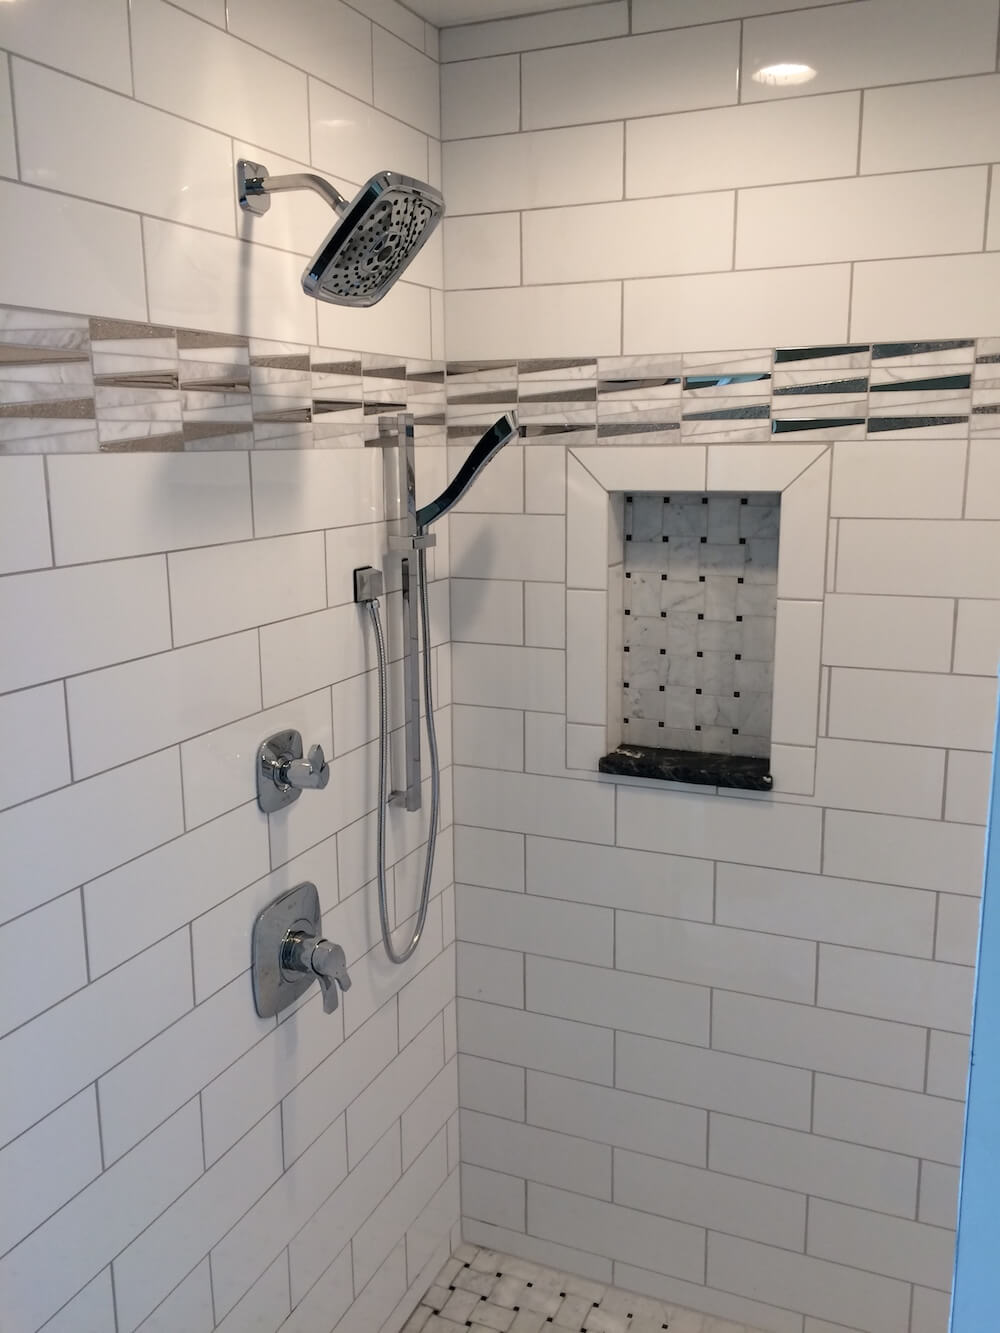 Regrouting Shower Tile Cost Regrout Shower Price - Cost of regrouting